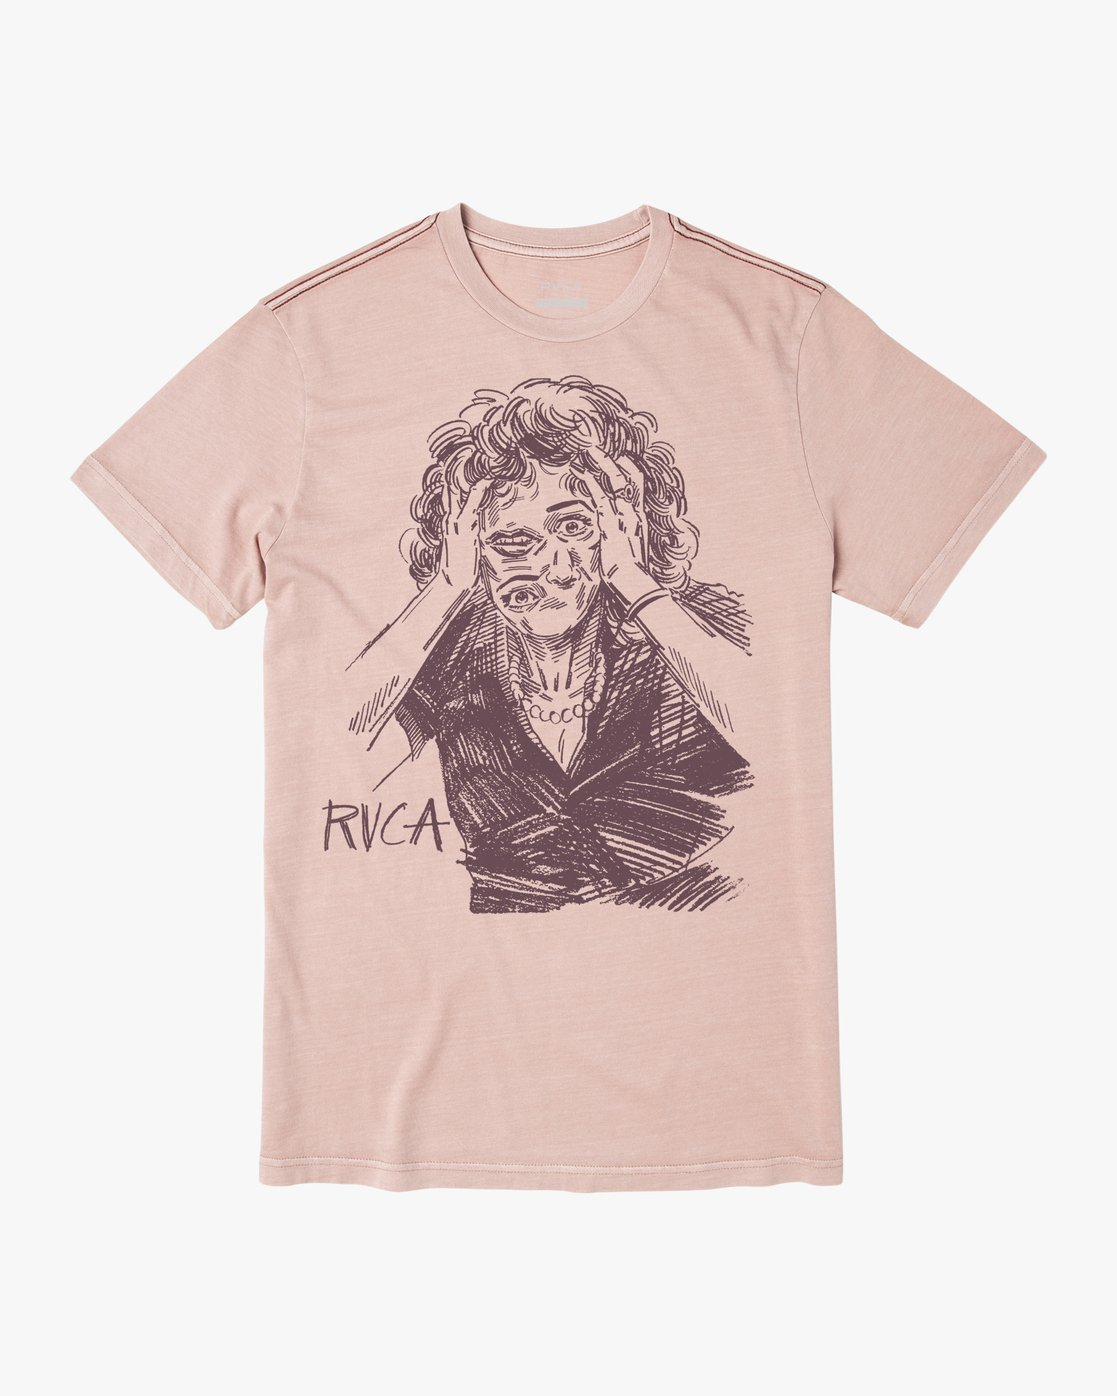 0 CHANGING FACE SHORT SLEEVE T-SHIRT Grey M4383RCF RVCA